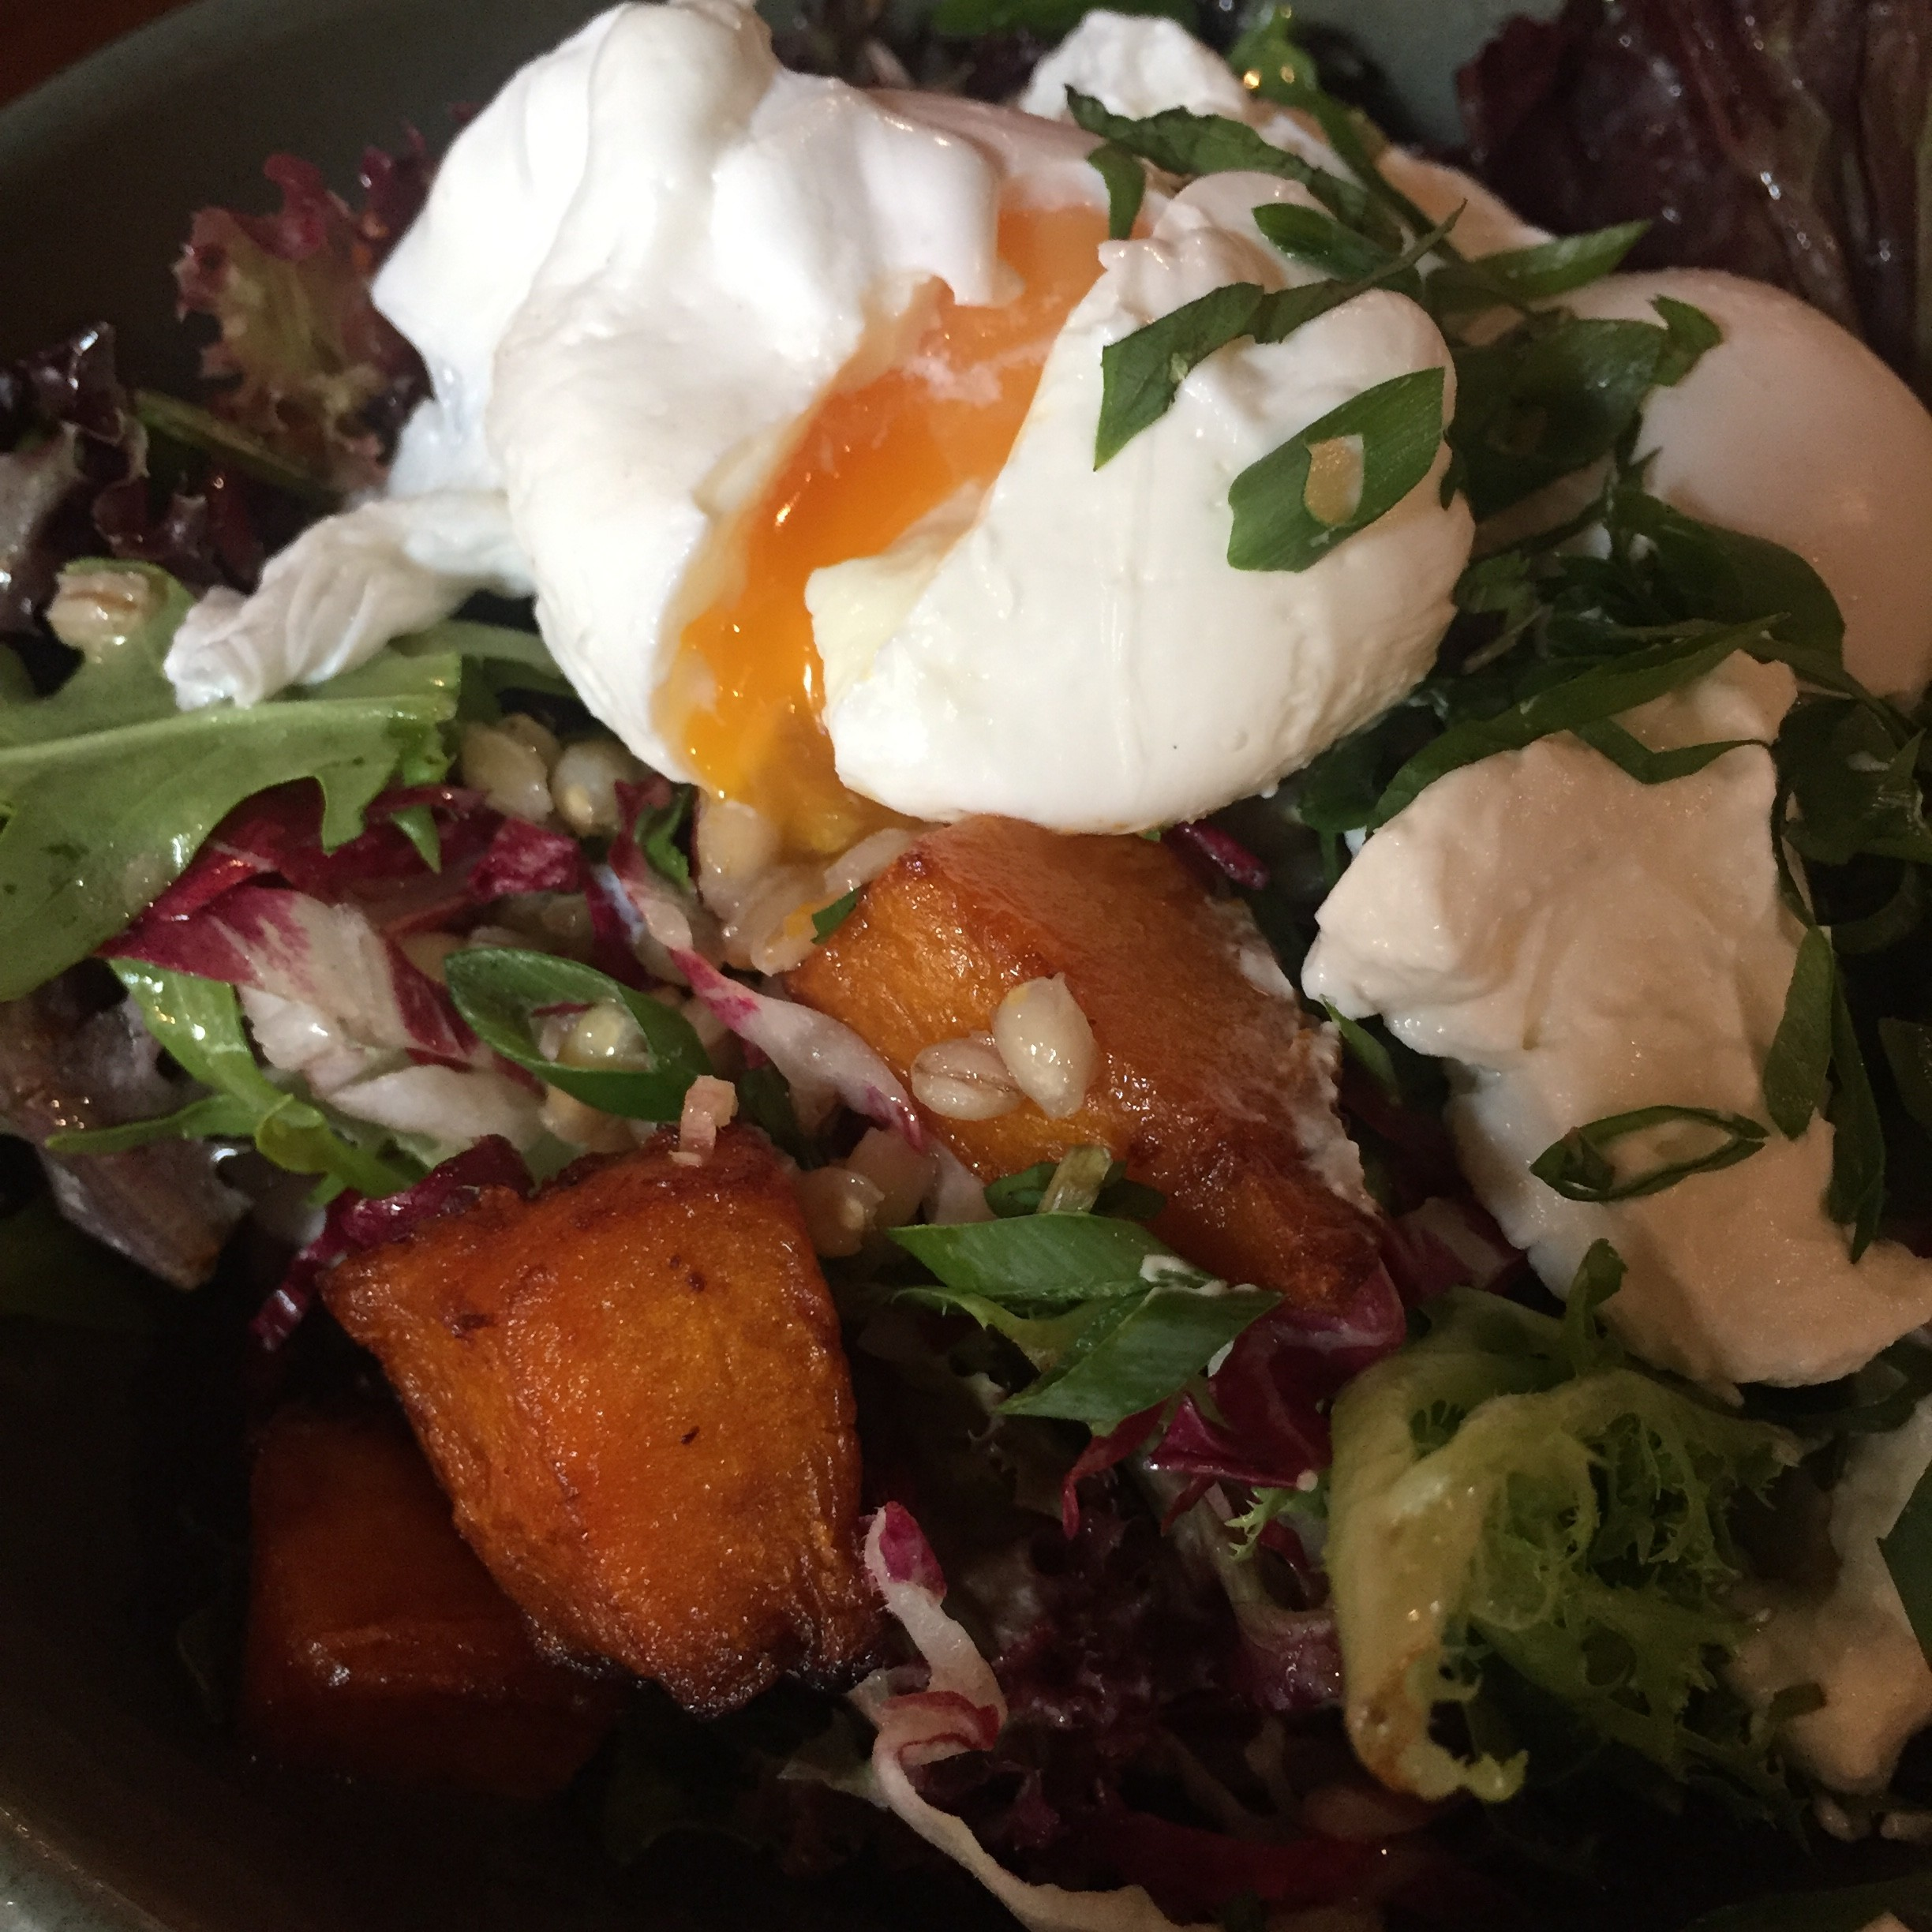 11x Breakfast, lunch & coffee places in Sydney (Manly, Bondi & CBD)